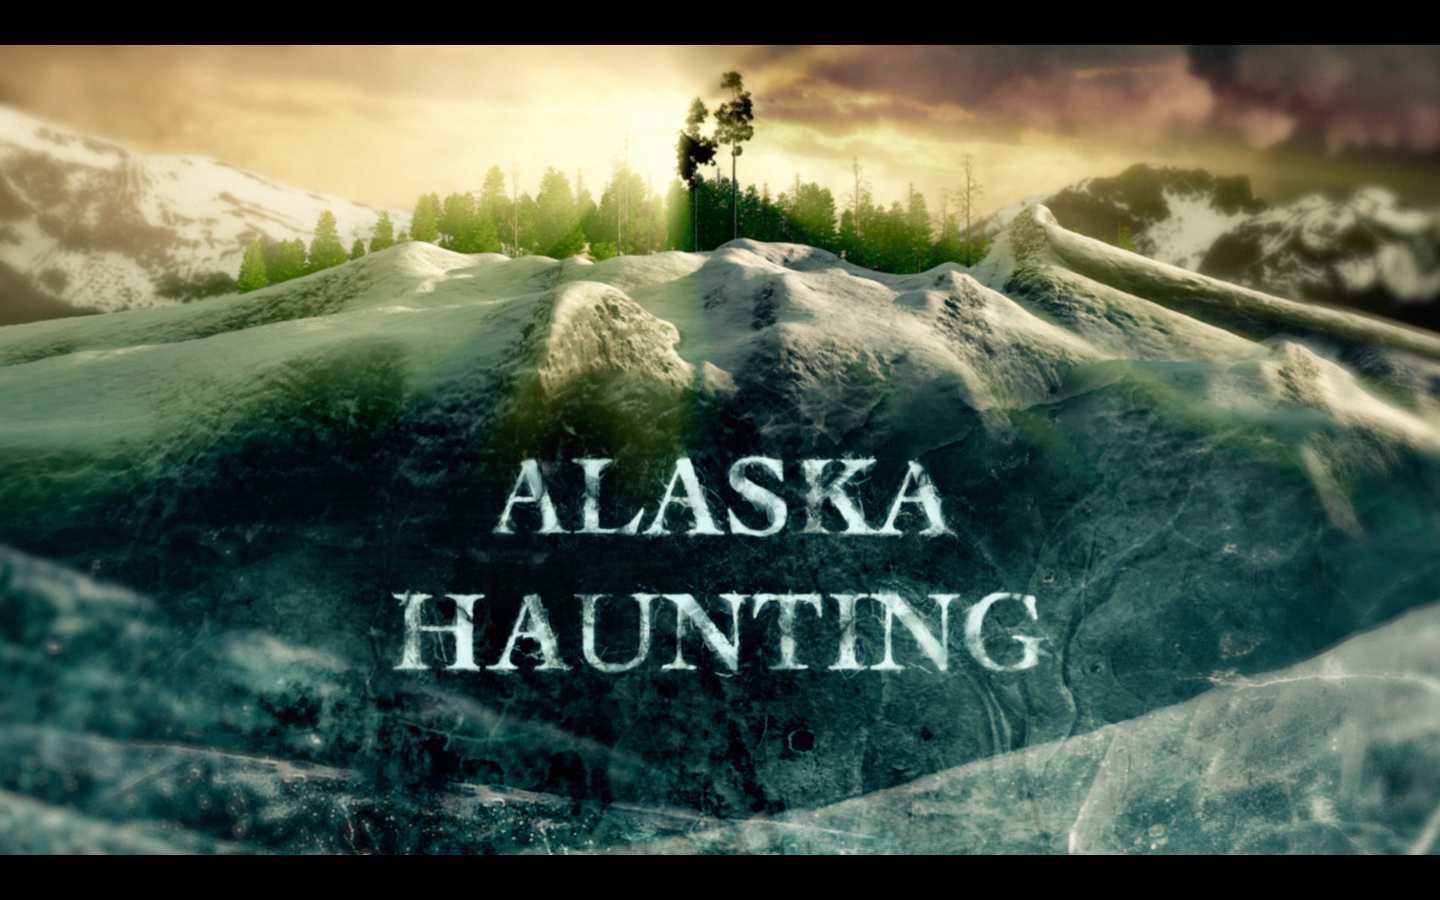 Alaska Haunting<br><br>Destination America<br><i>2015 — 1 Season, 6 episodes</i>